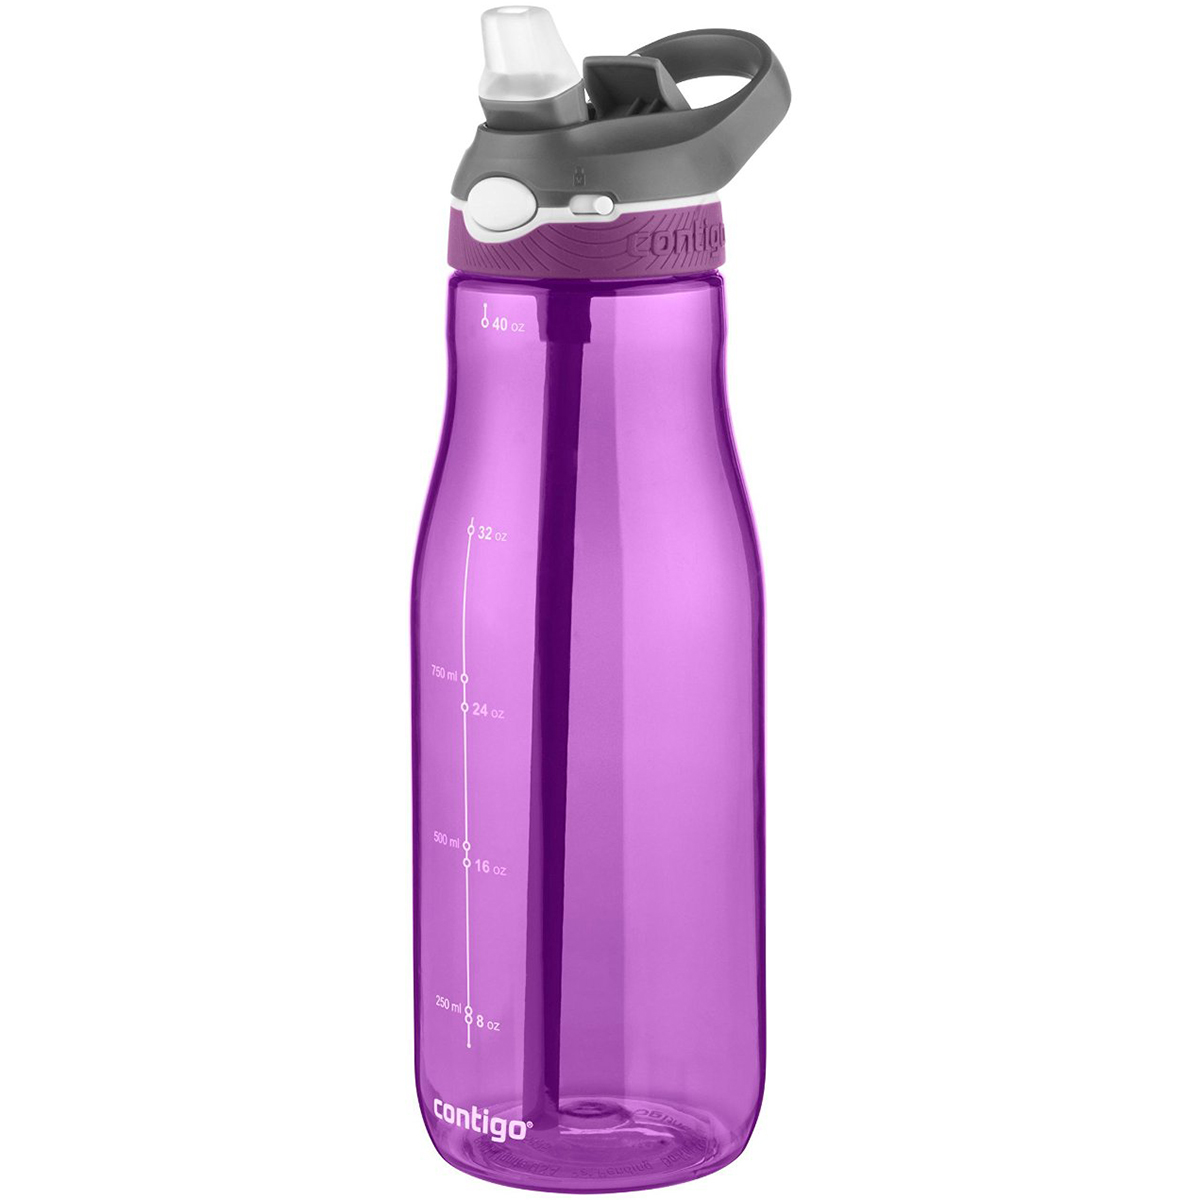 Contigo-40-oz-Ashland-Autospout-Water-Bottle thumbnail 19